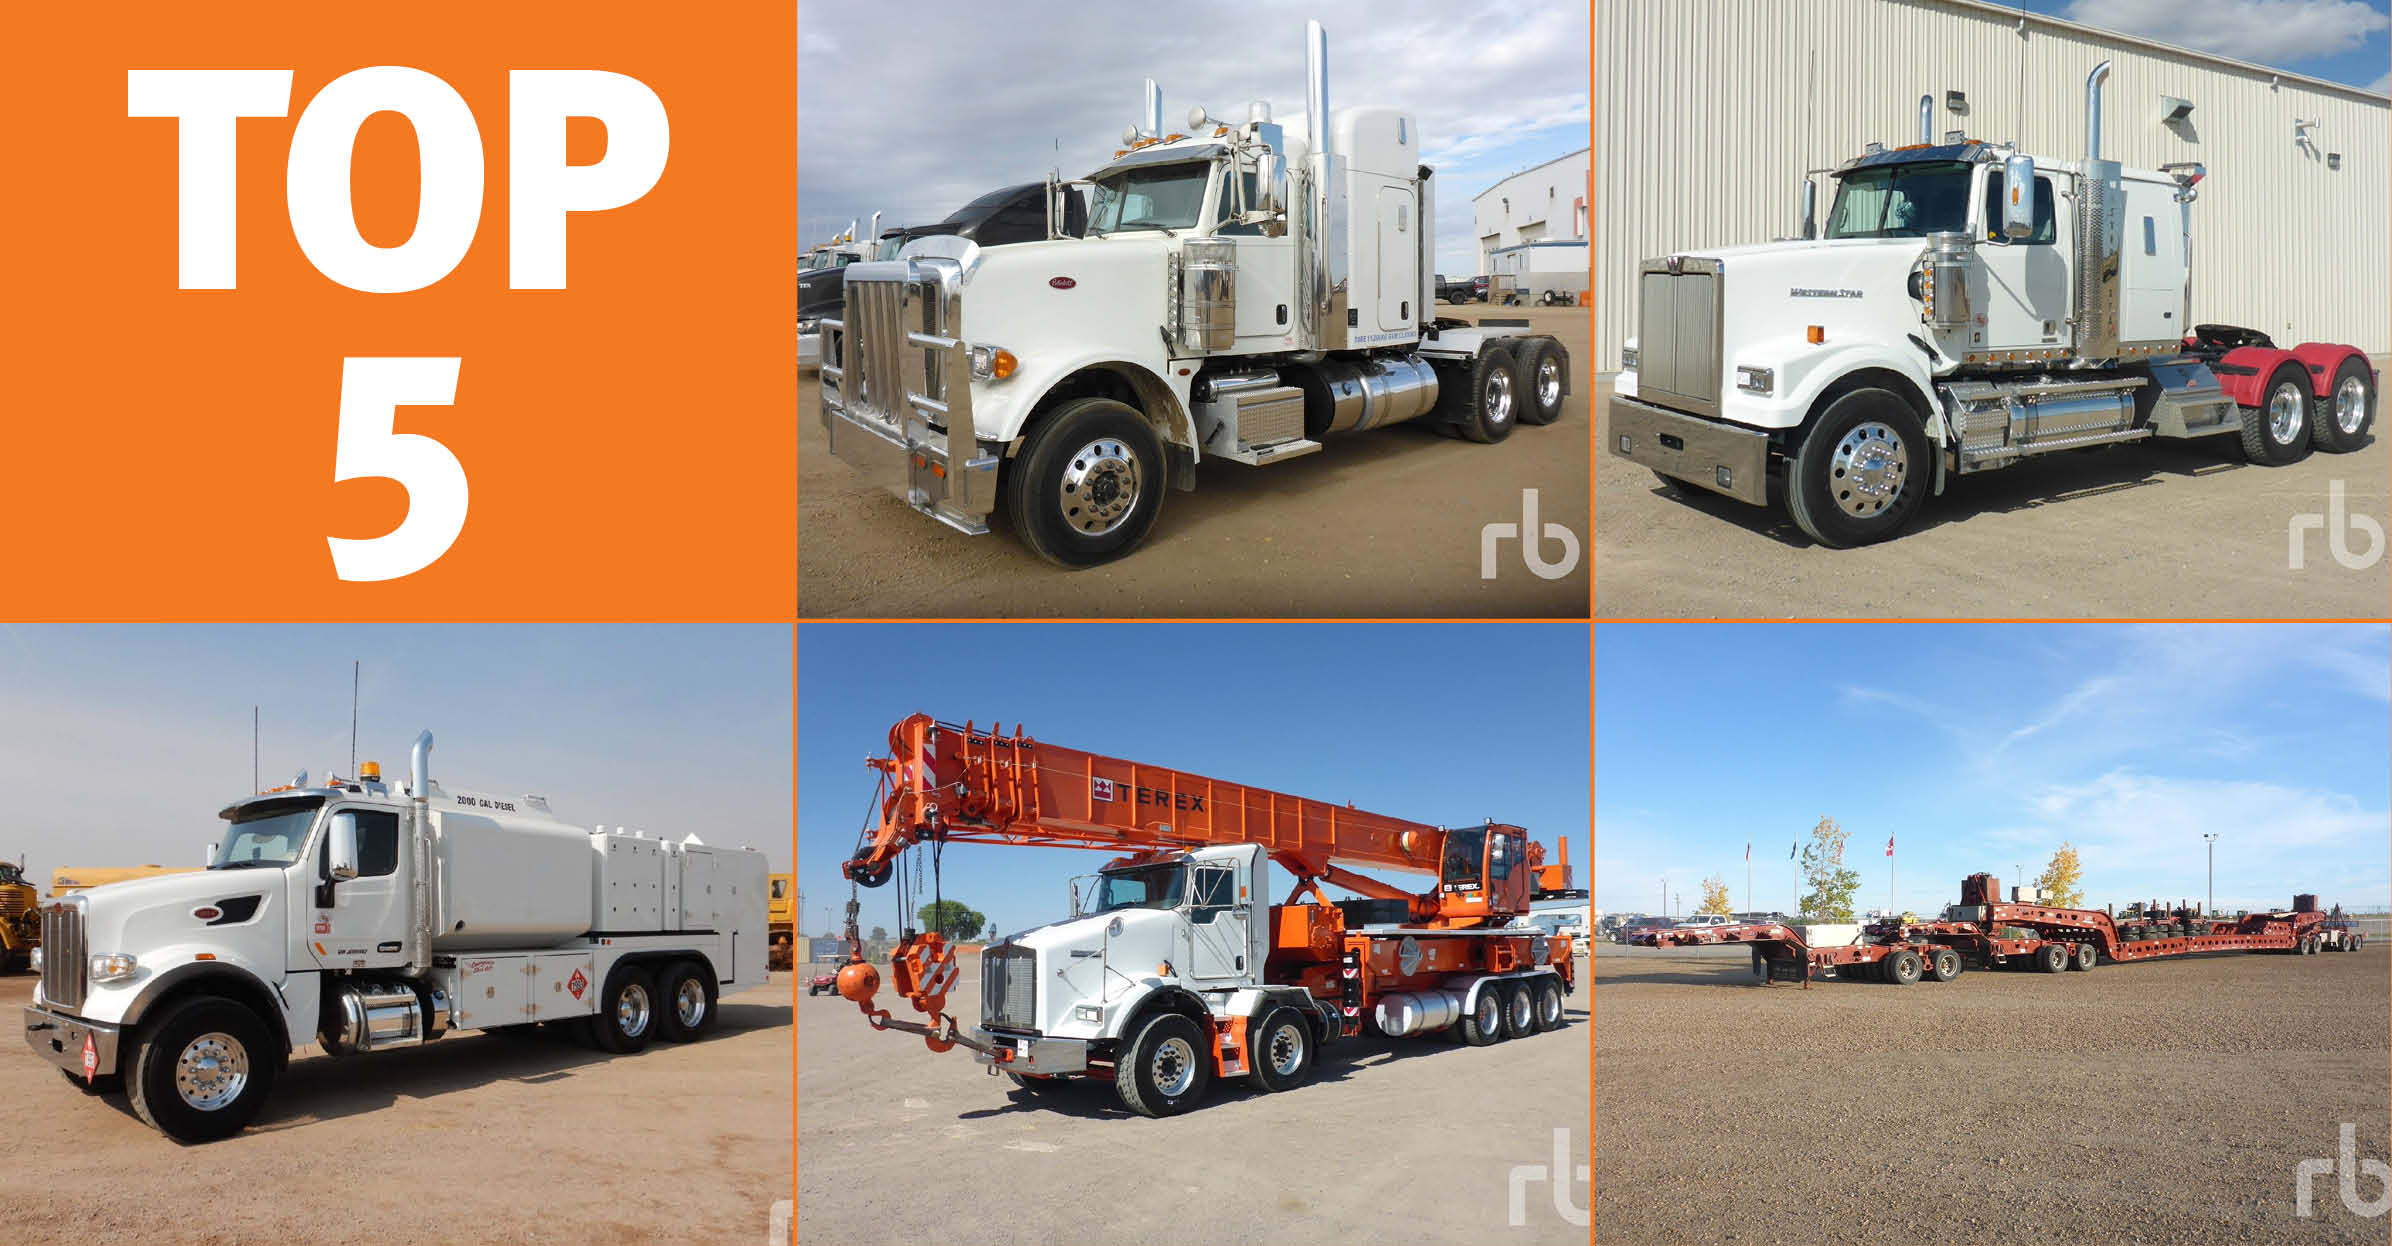 Trucks and transport equipment for sale at Ritchie Bros.